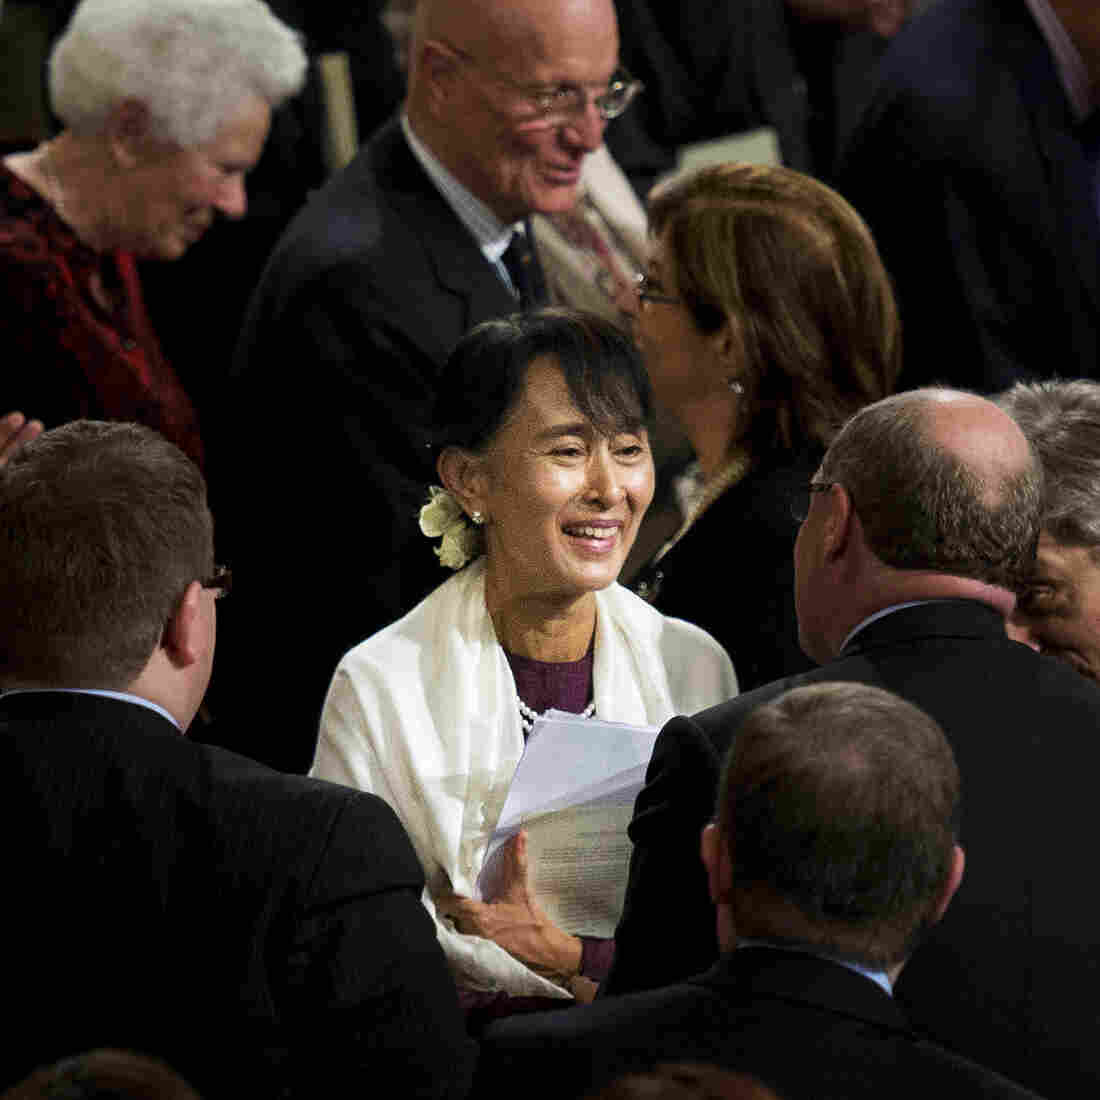 Myanmar opposition leader Aung San Suu Kyi smiles as she leaves Westminster Hall after addressing both Houses of Parliament on June 21 in London.